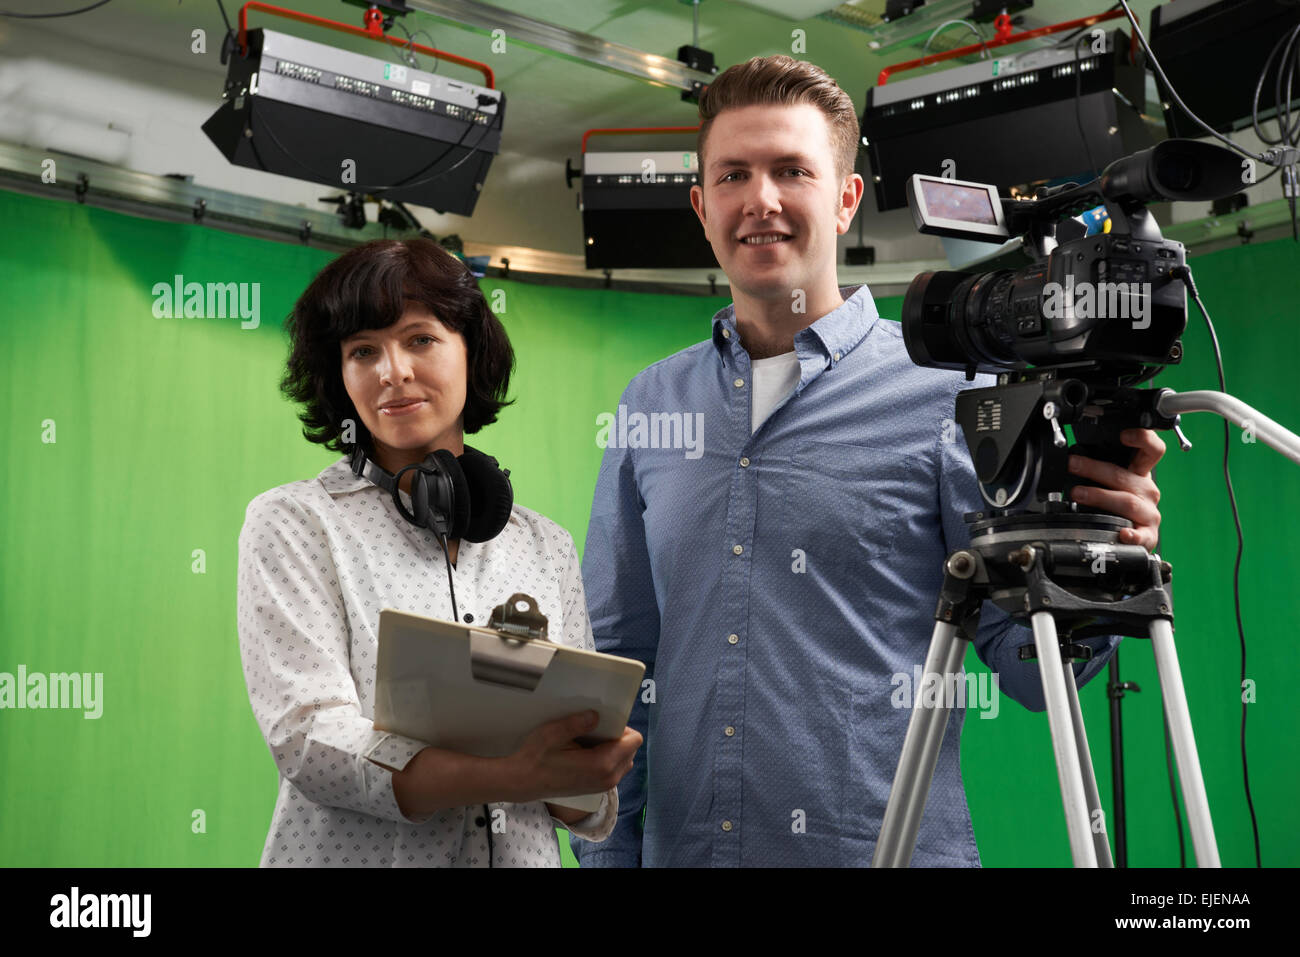 Portrait Of Cameraman And Floor Manager In Television Studio - Stock Image